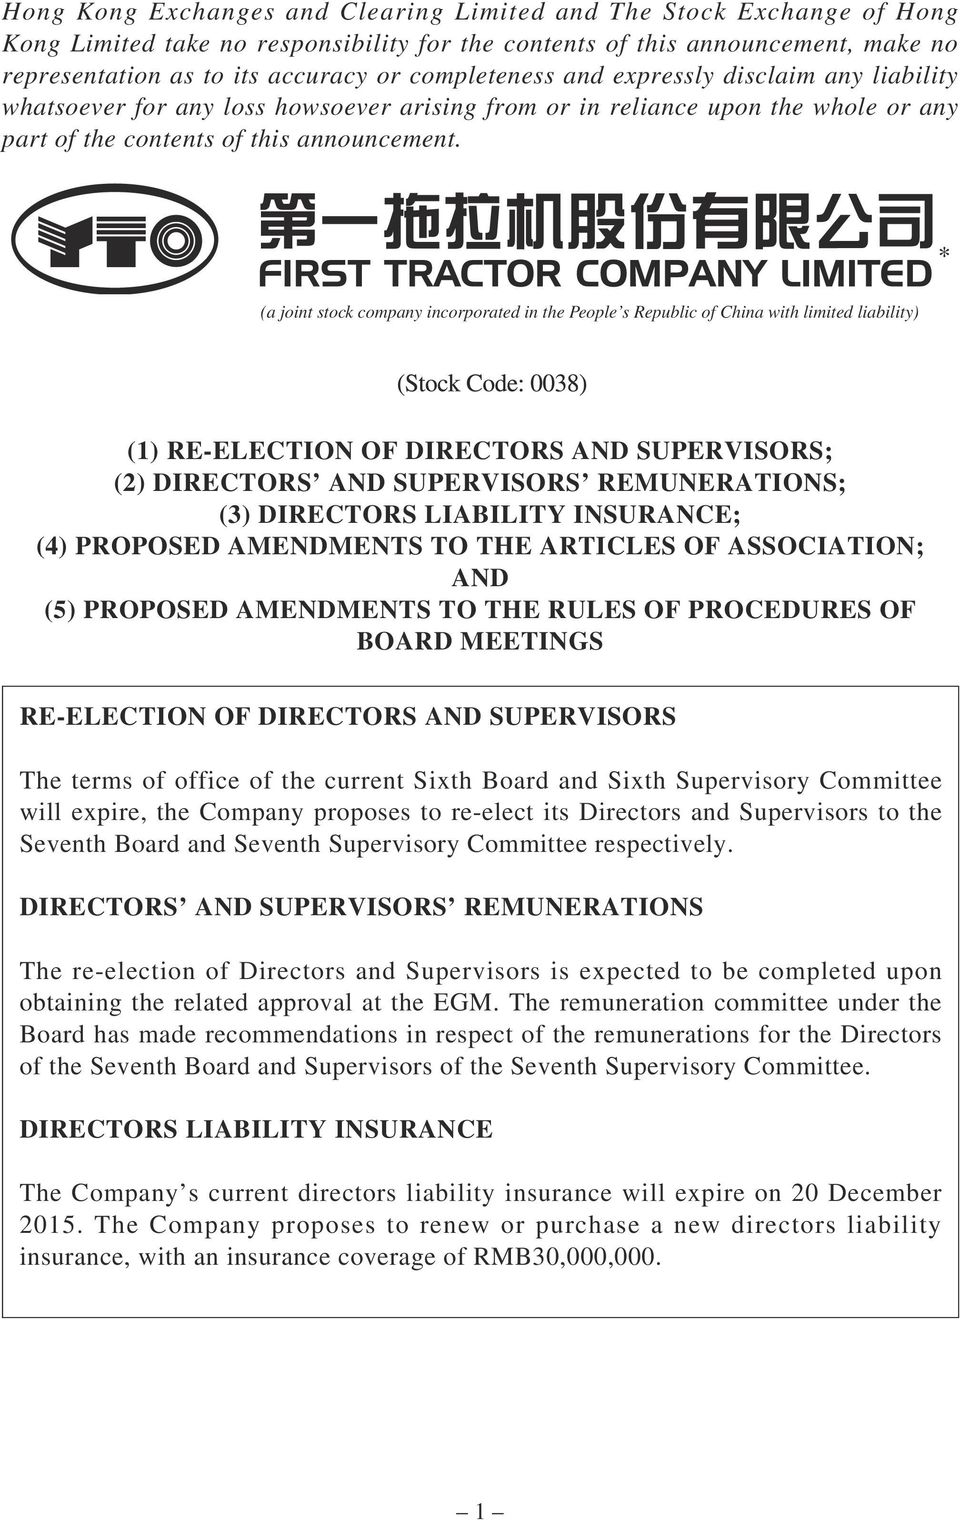 (a joint stock company incorporated in the People s Republic of China with limited liability) (1) RE-ELECTION OF DIRECTORS AND SUPERVISORS; (2) DIRECTORS AND SUPERVISORS REMUNERATIONS; (3) DIRECTORS